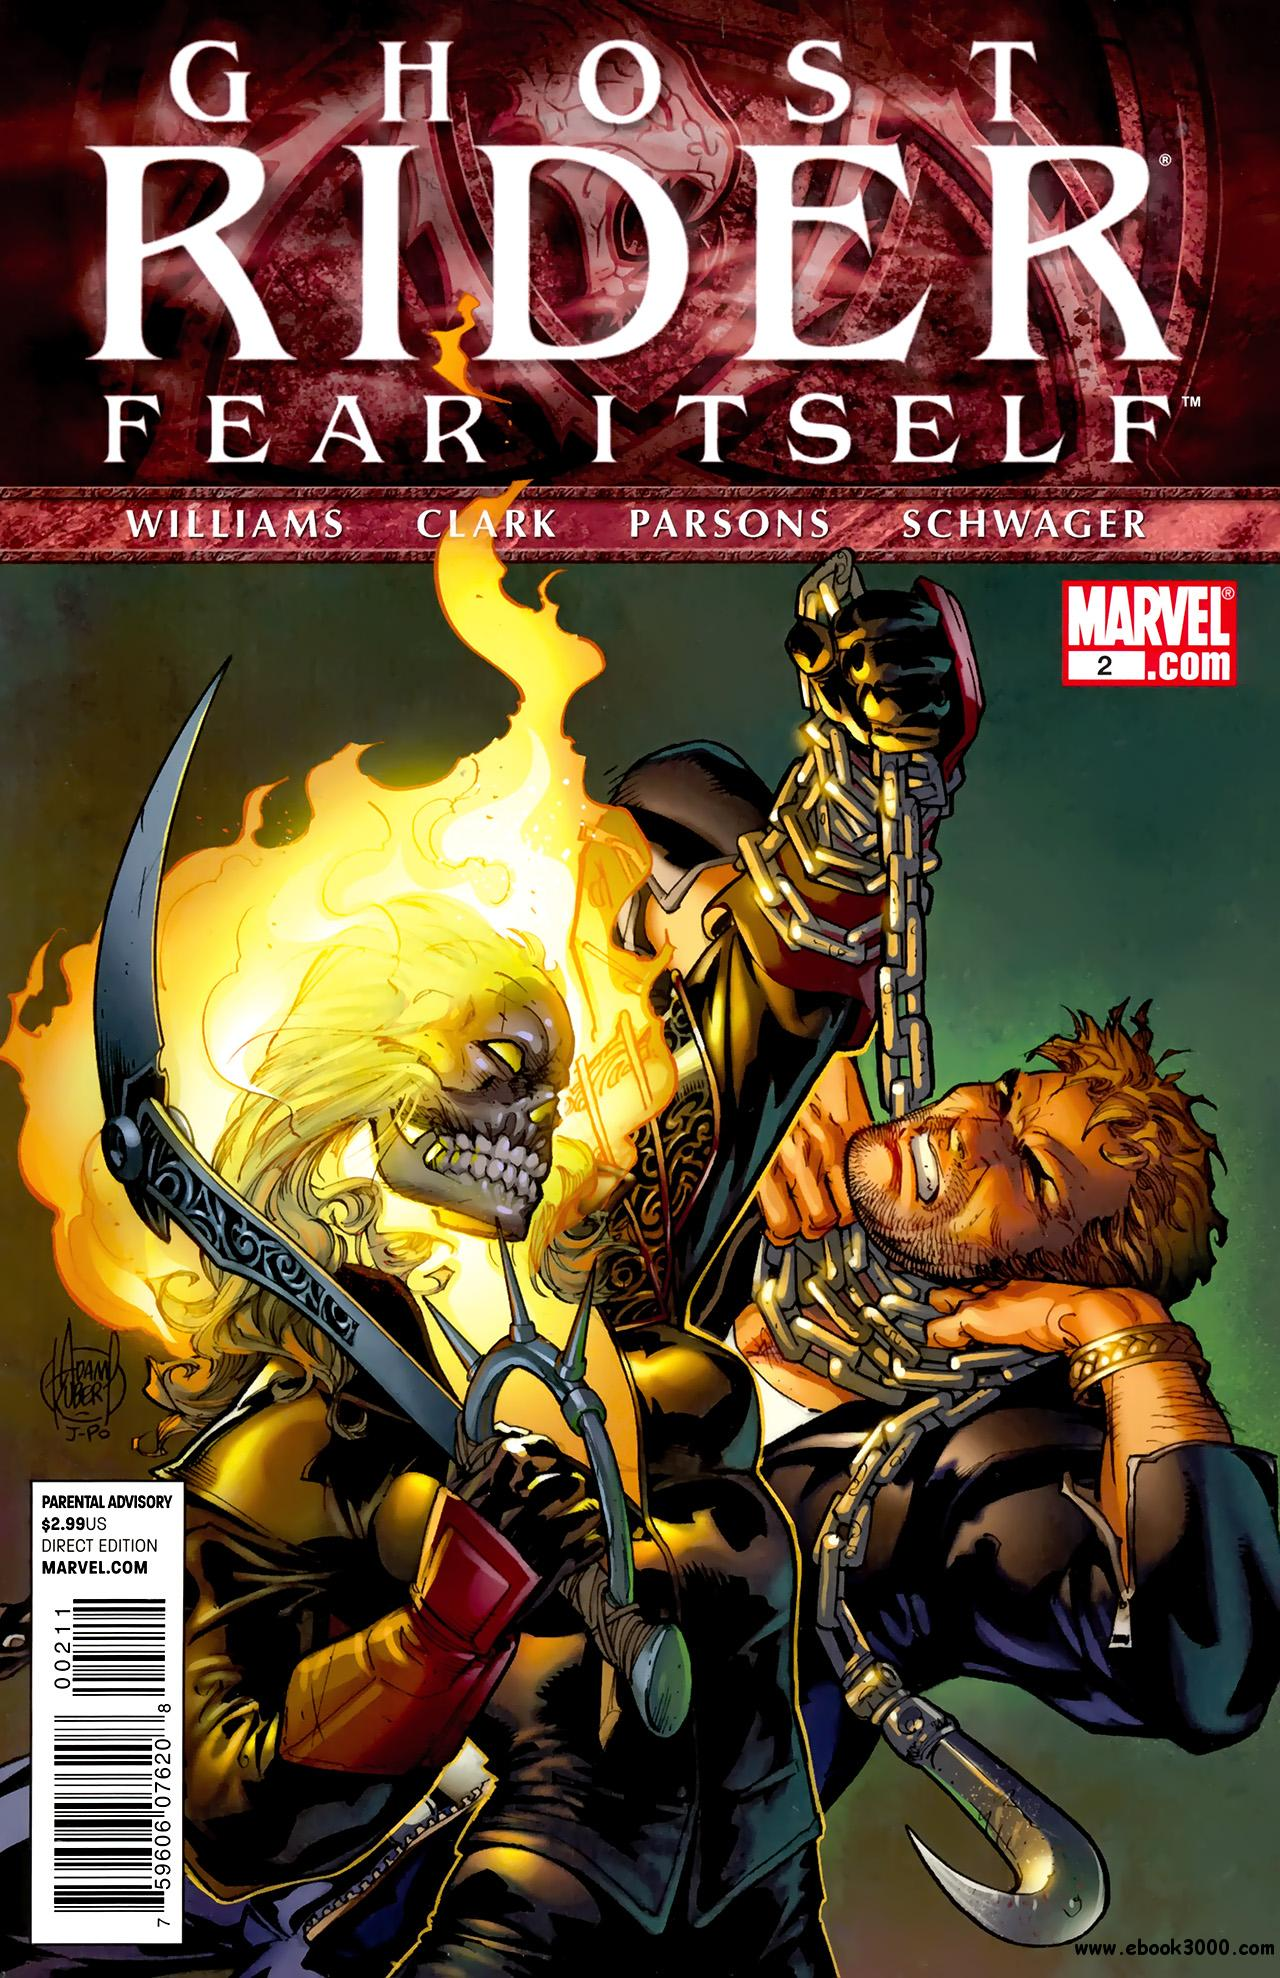 Ghost Rider #2 (2011) free download